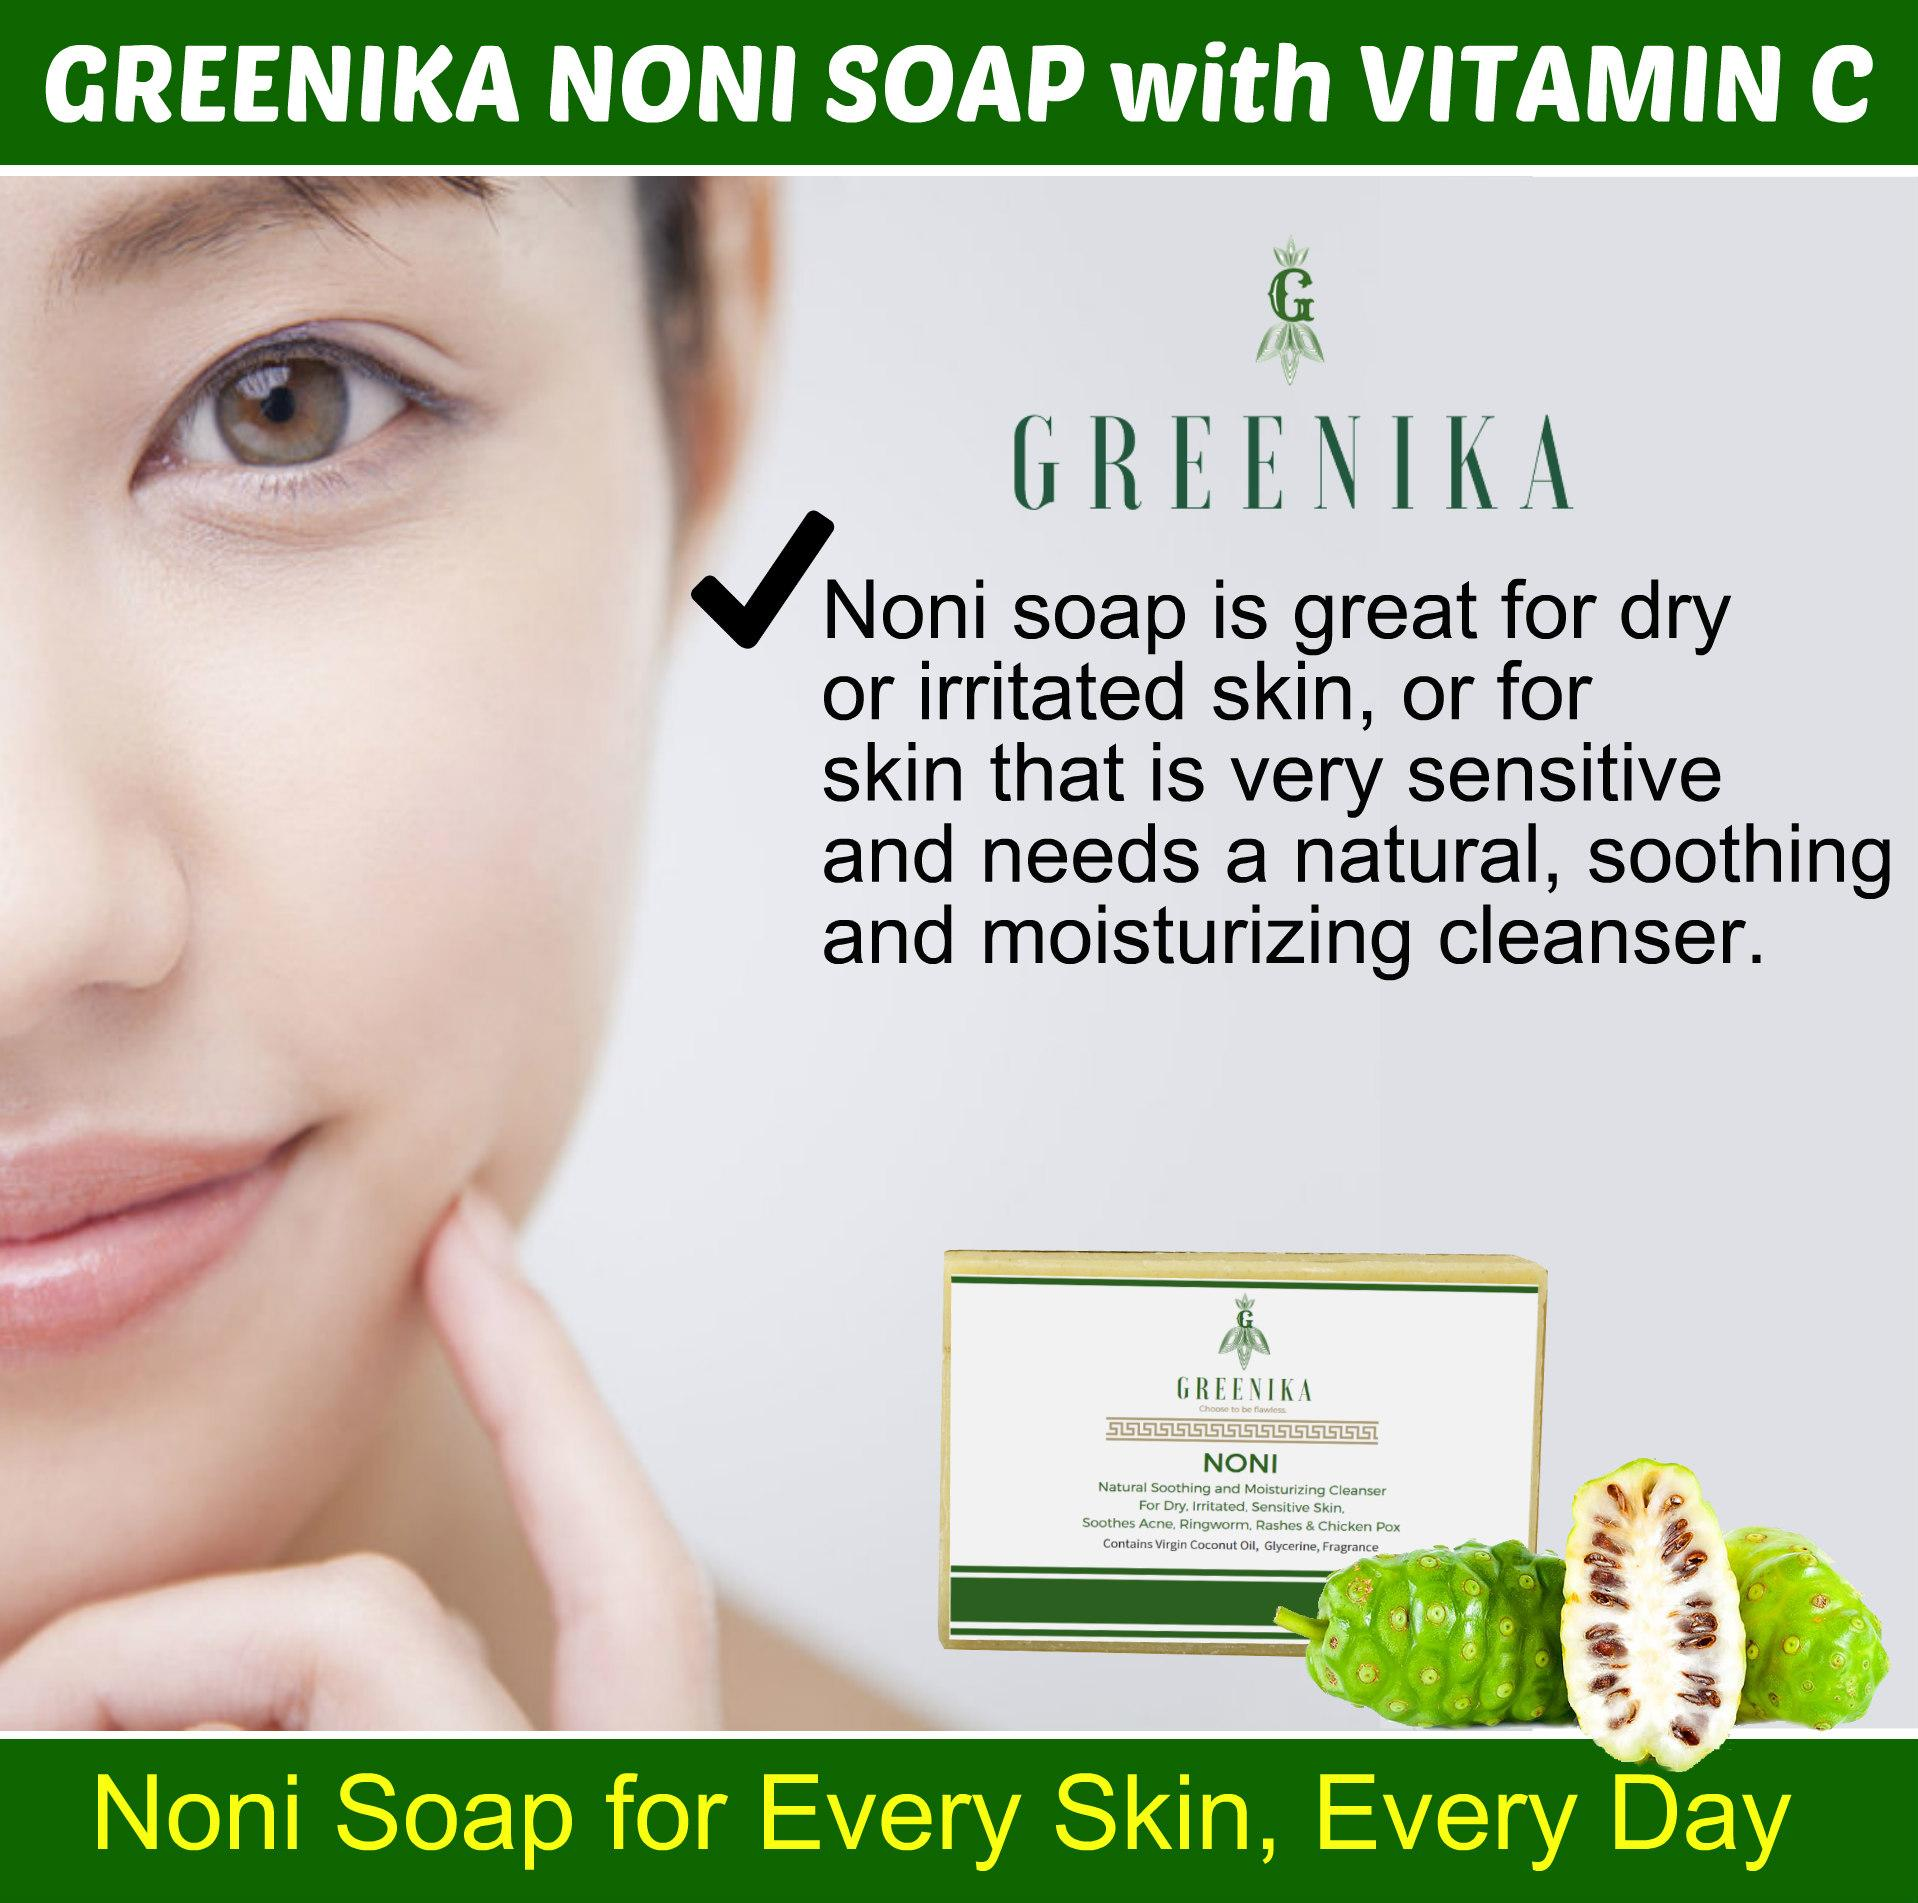 Organic Greenika Noni Natural Whitening Anti Acne Soap Organic Anti Rash  Ringworms Bacteria Treatment Soap Antioxidant Better than any Anti Aging  Noni